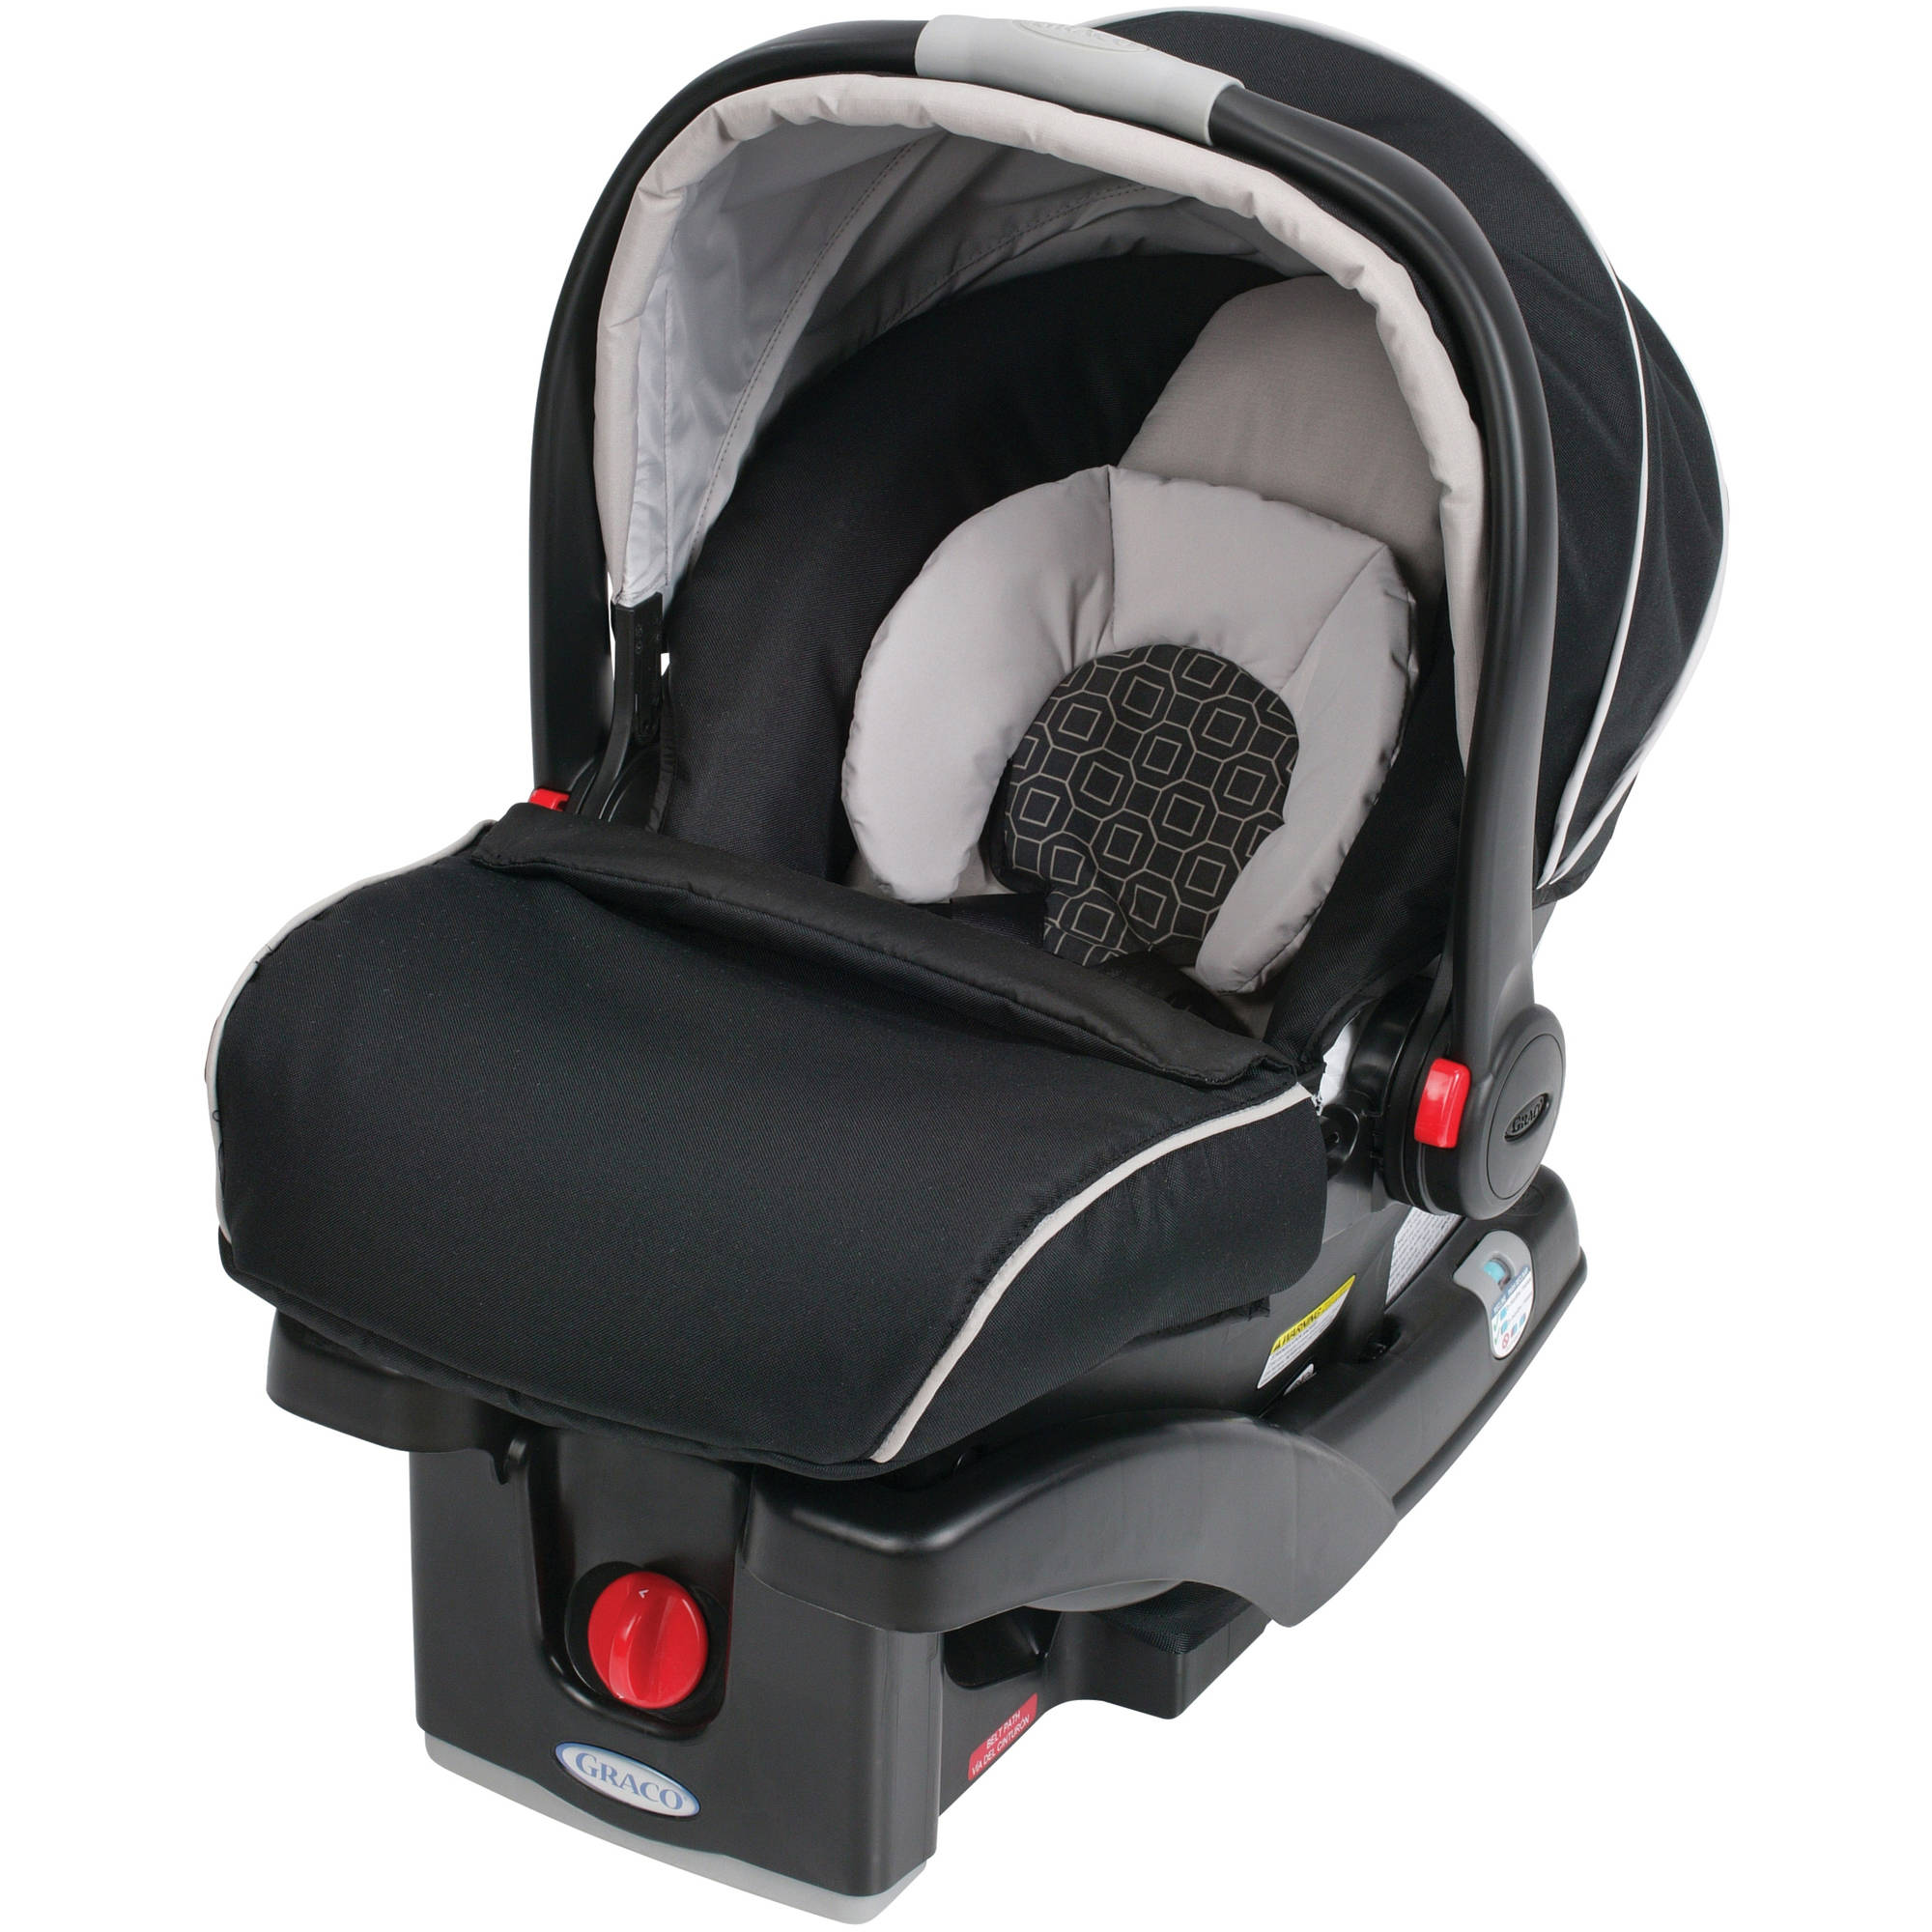 Graco SnugRide Click Connect 35 Infant Car Seat w/ Boot, Choose Your Pattern